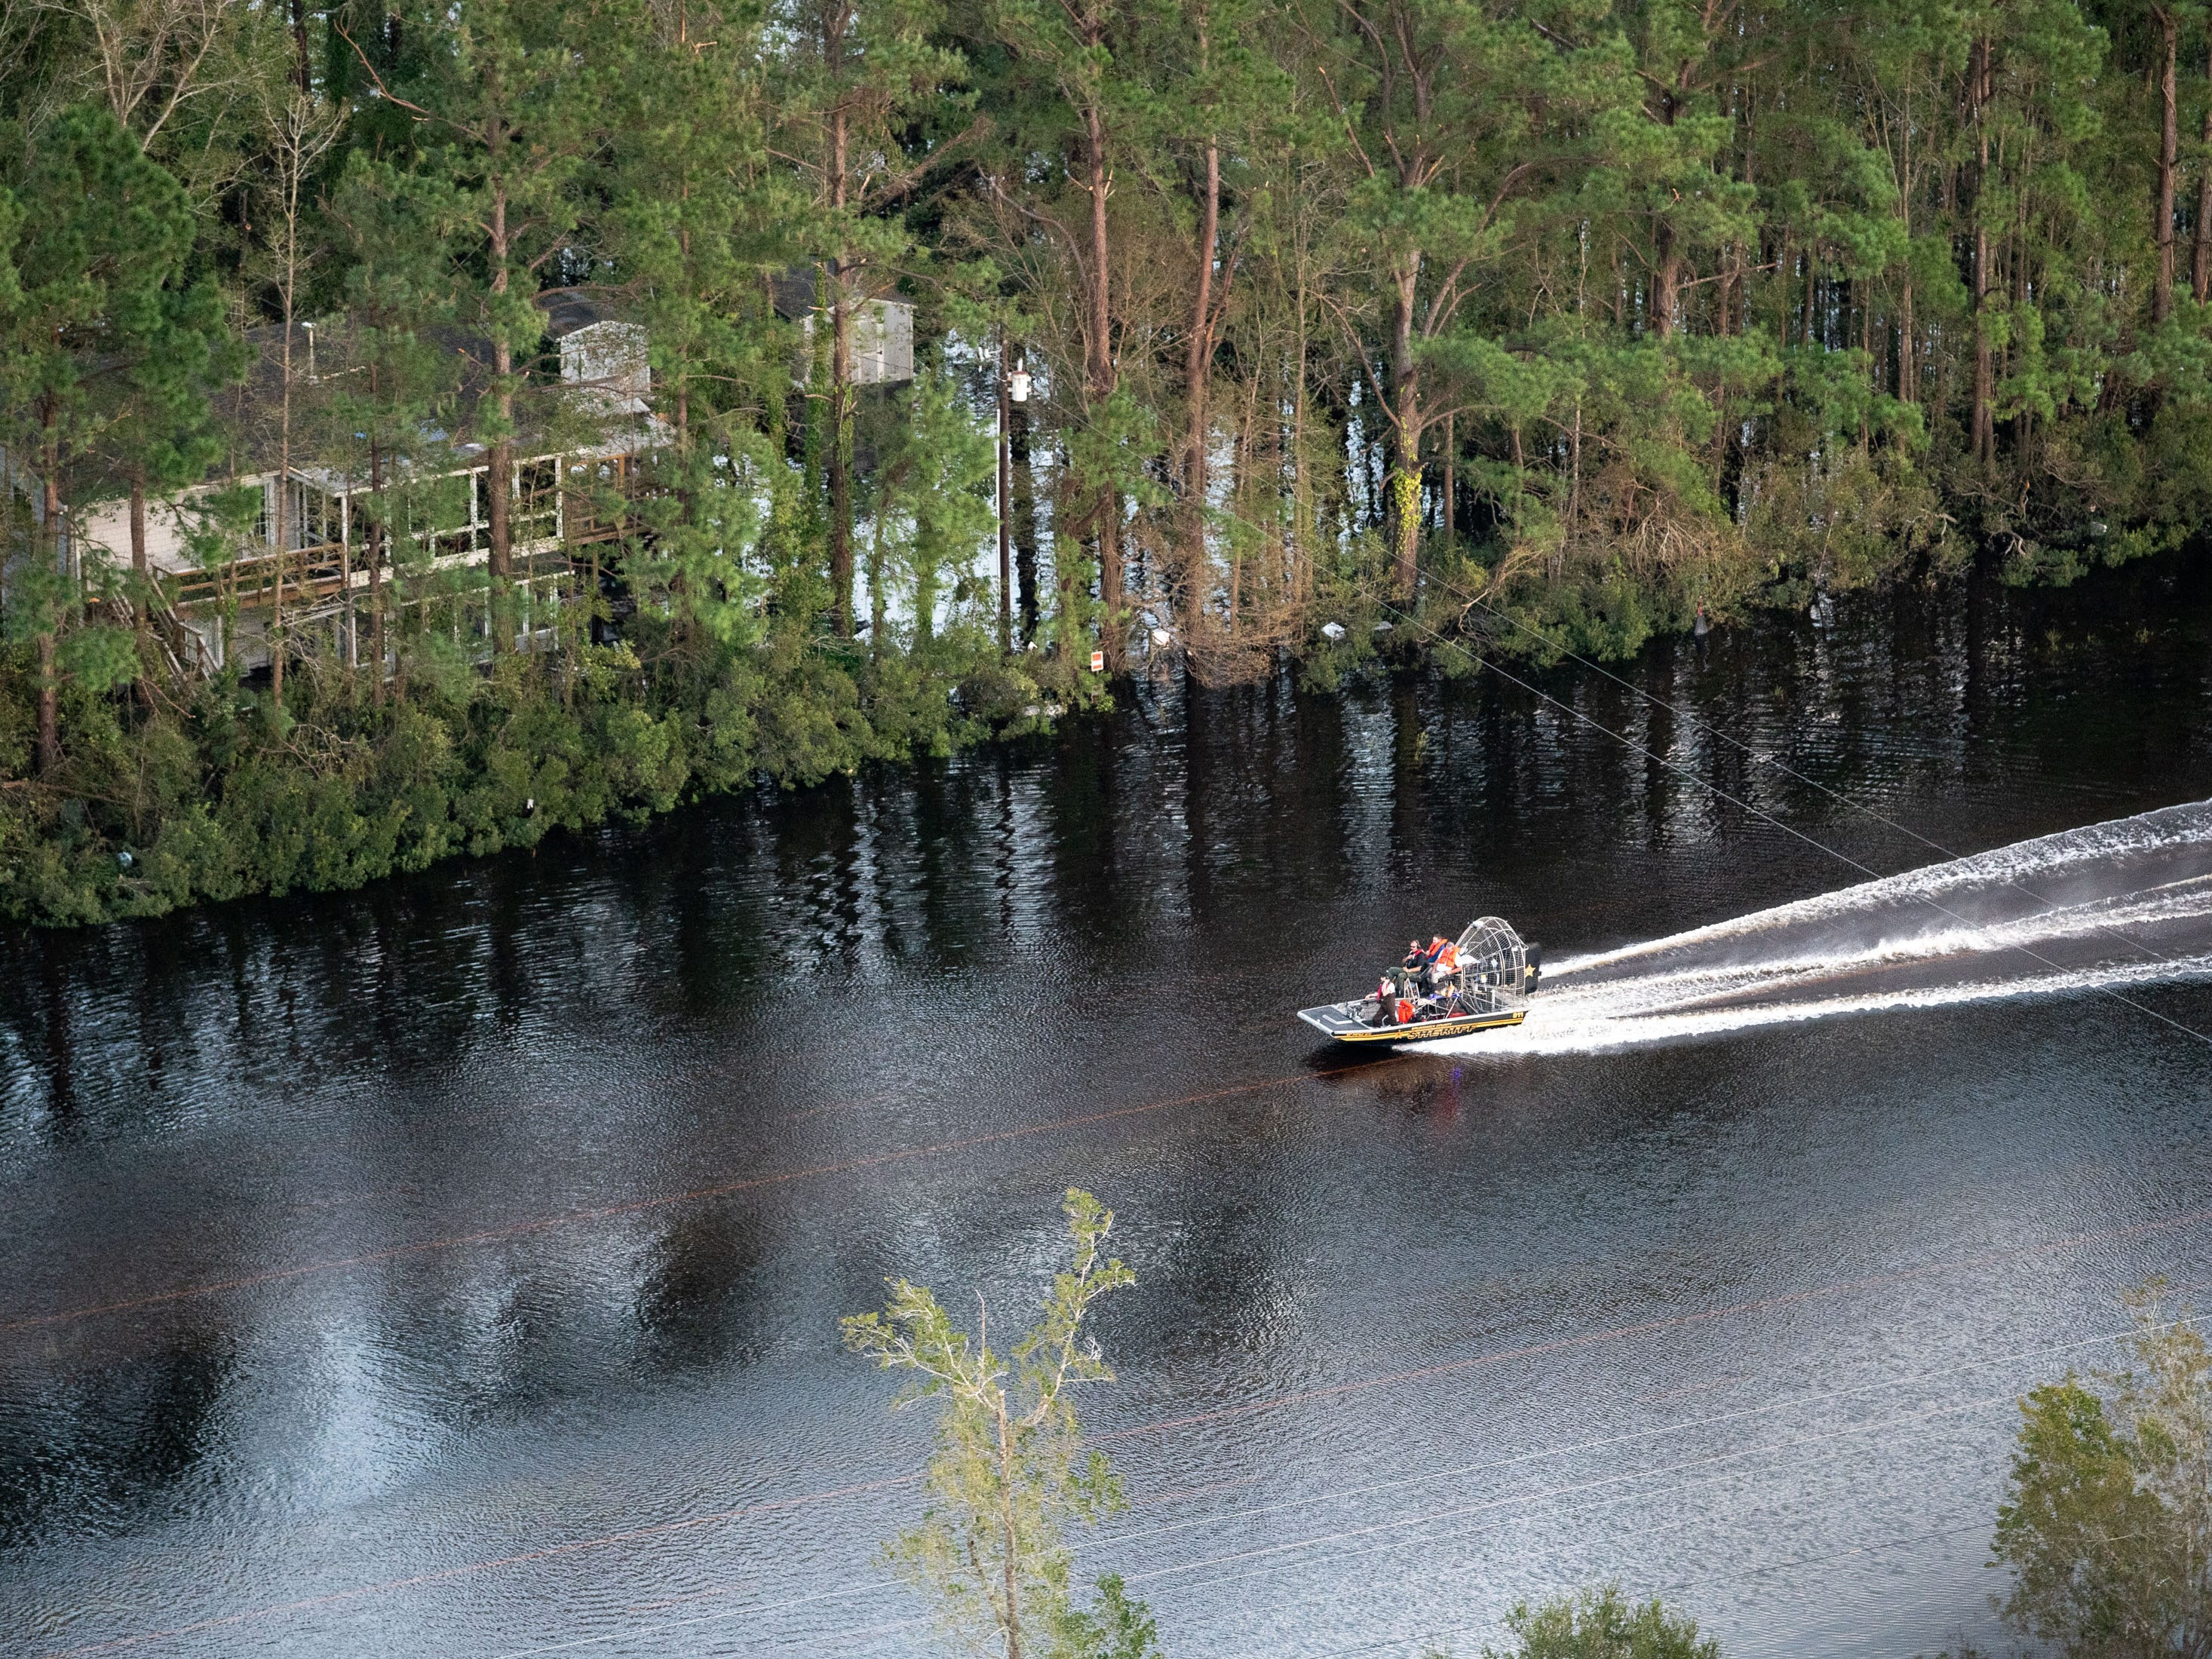 A boat passes down the flooded US-17, as seen from a Coast Guard helicopter, in Brunswick County, N.C., Monday, Sept. 17, 2018.